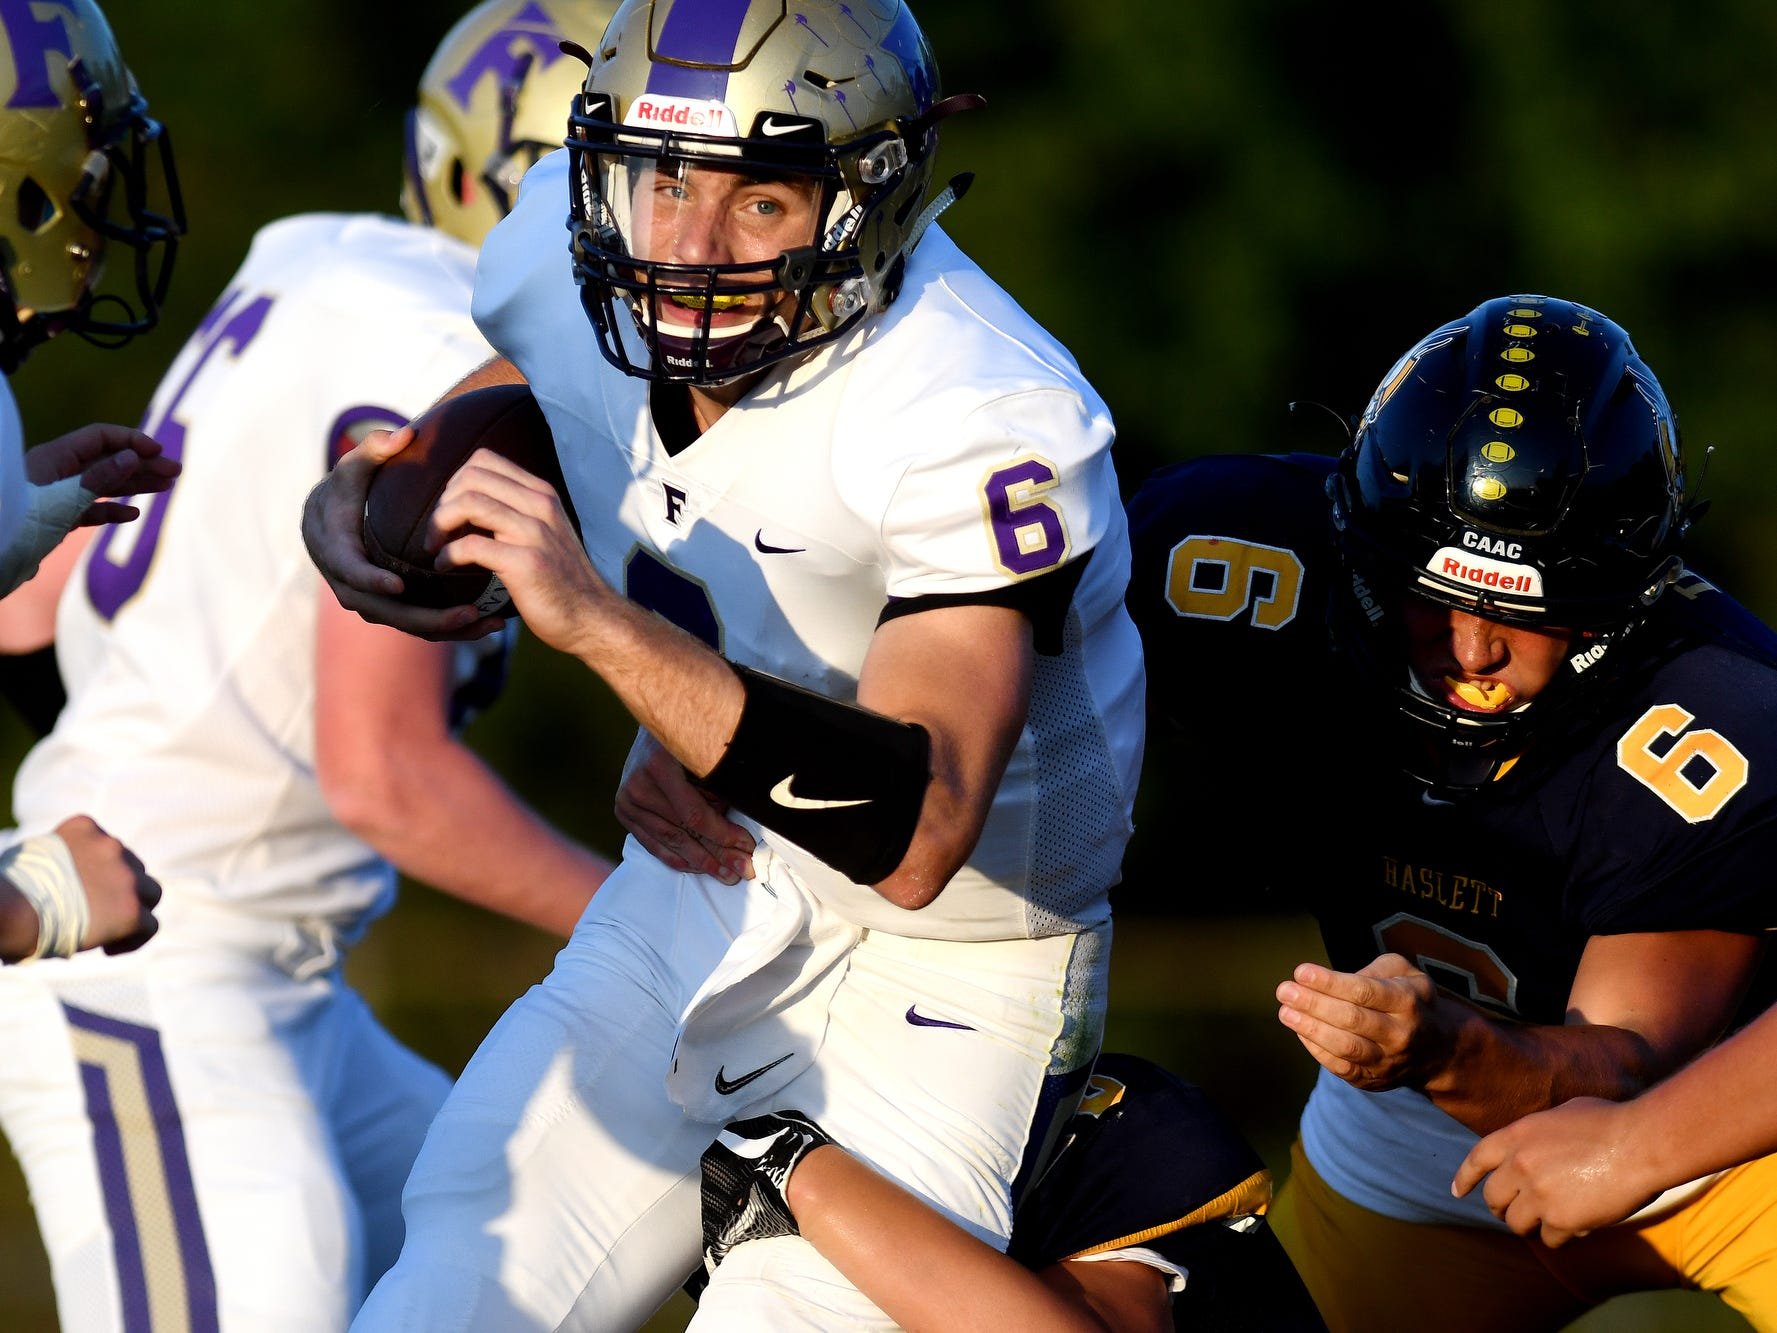 Fowlerville's quarterback Geoffrey Knaggs, left, is tackled by Haslett defenders at the end of a run during the first quarter on Friday, Sept. 14, 2018, at Haslett High School.